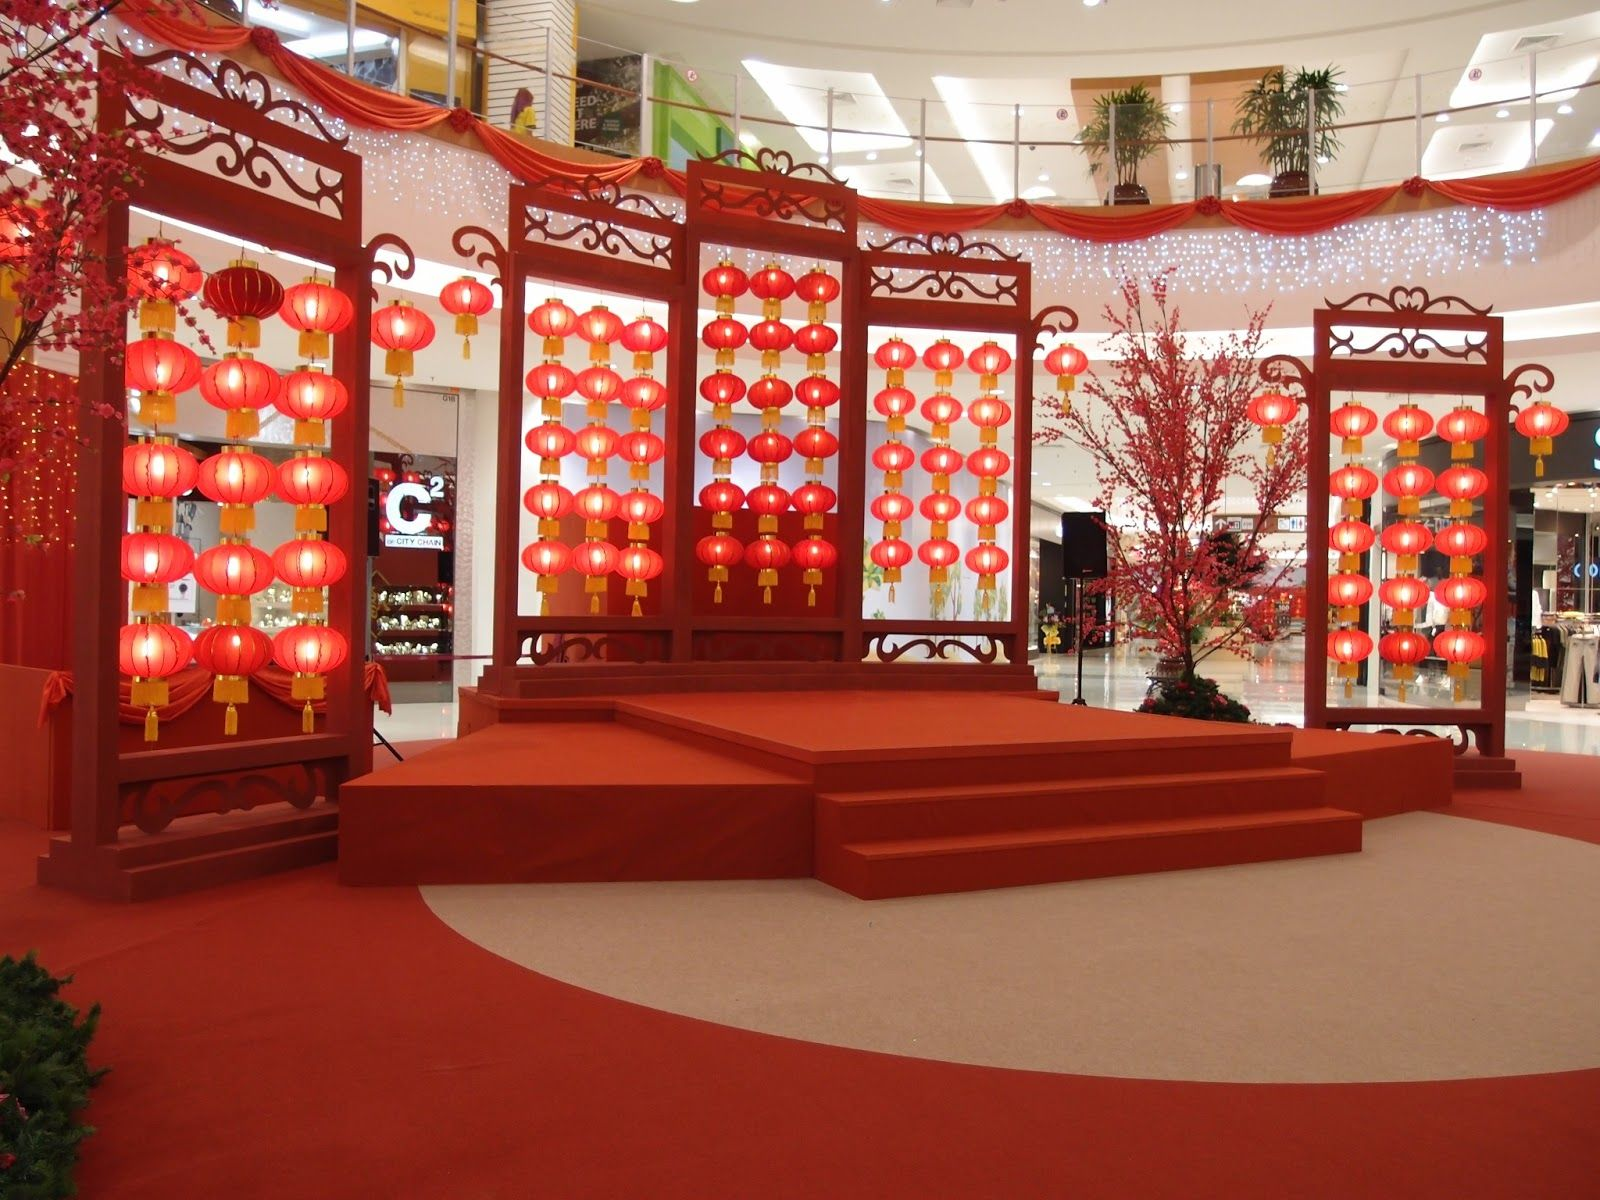 China Wedding Decorations: Image Result For Chinese Lantern Backdrop